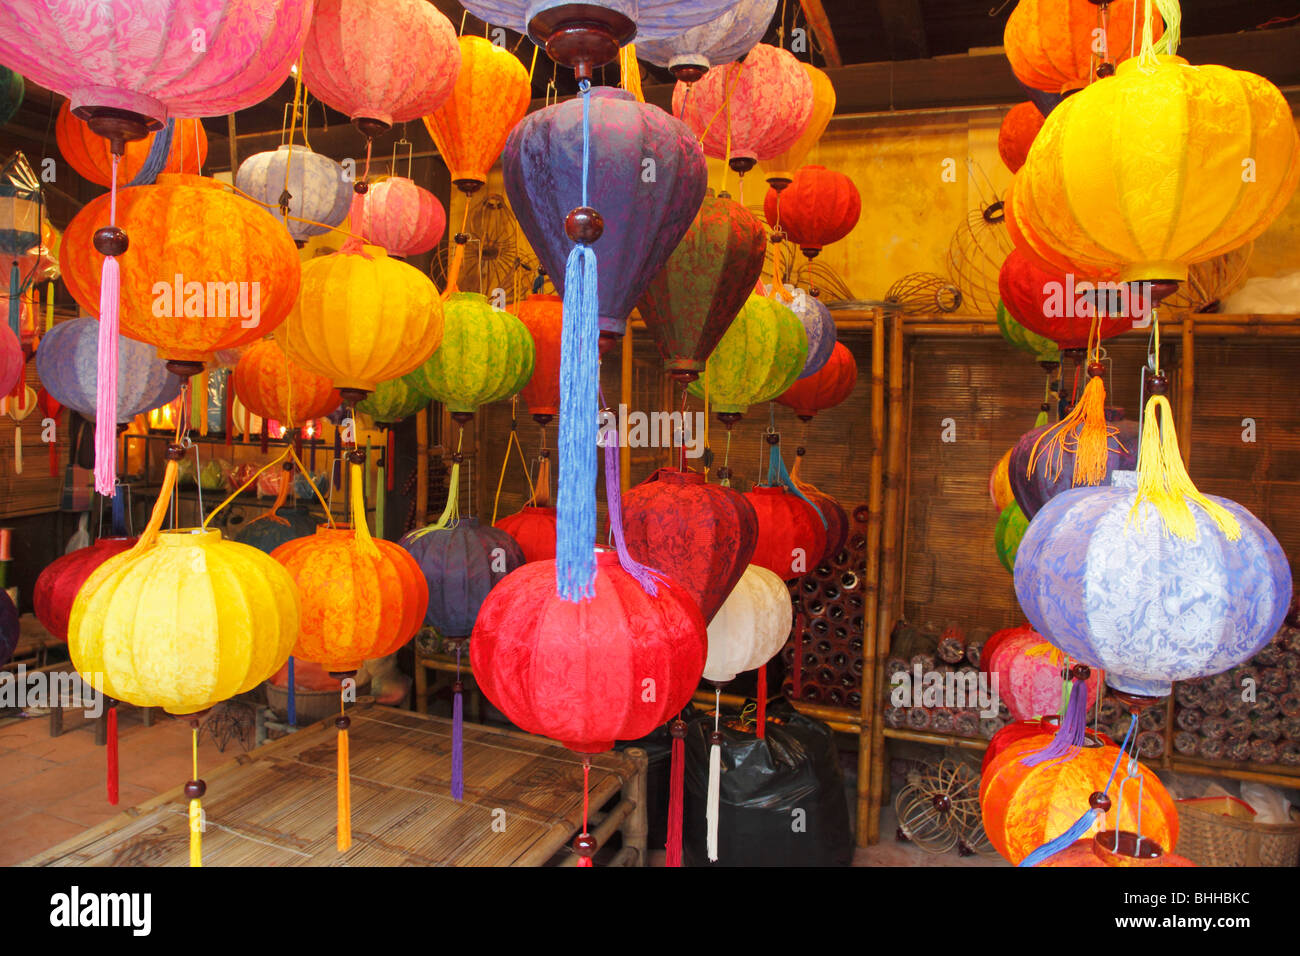 colorful paper lanterns stock photos colorful paper lanterns stock